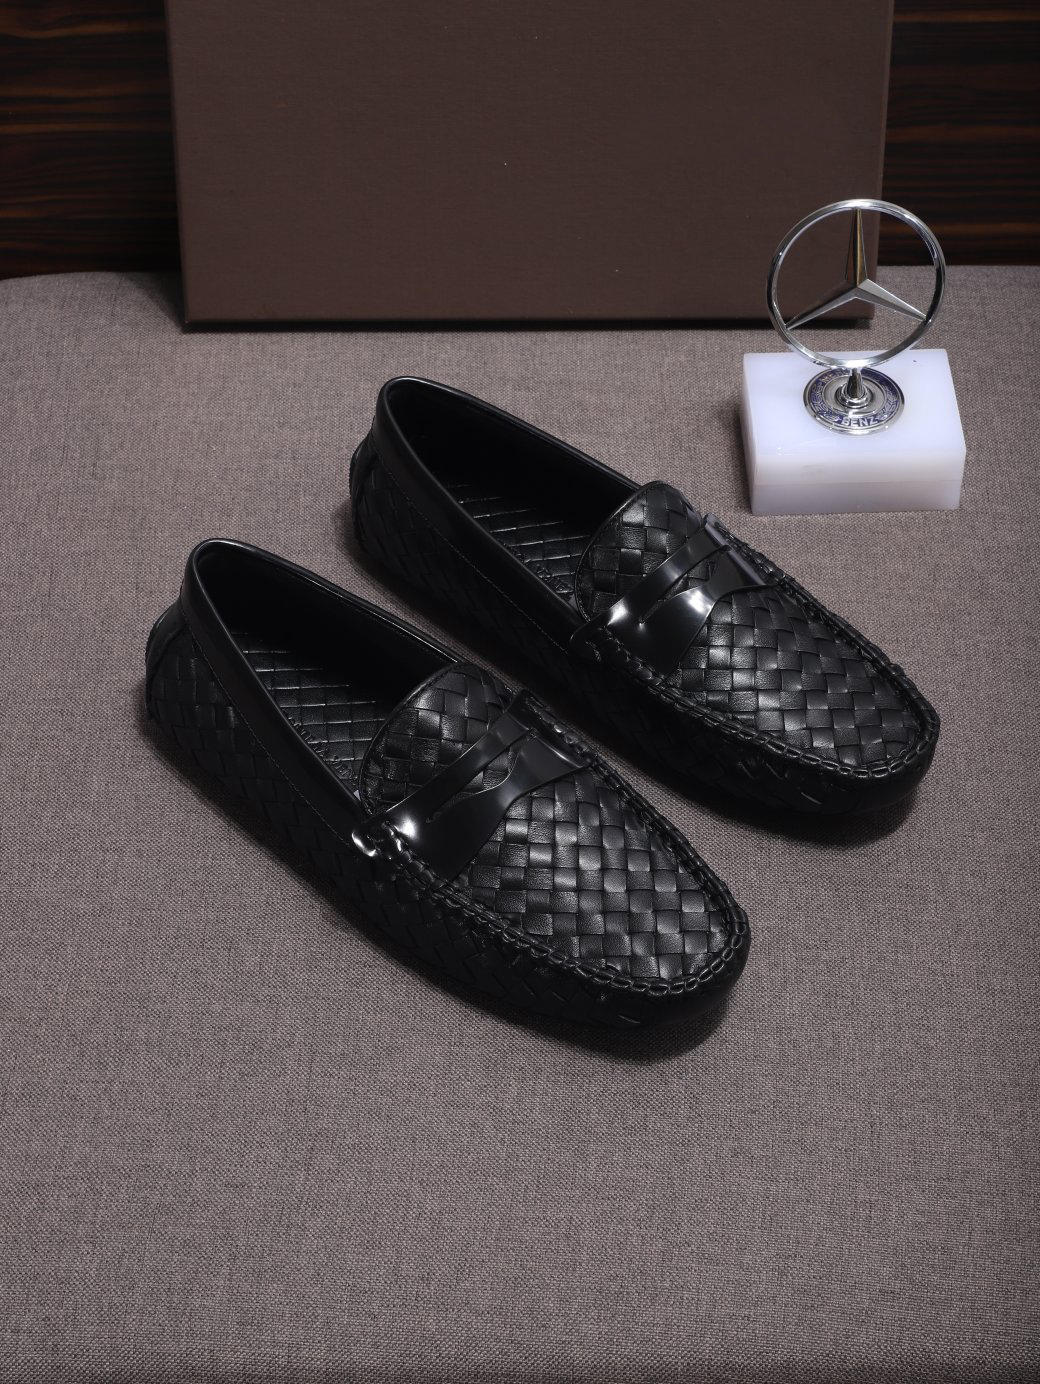 Custom Made Italian Leisure Shoes Black Woven Nappa Leather Loafers Size 38 To 46